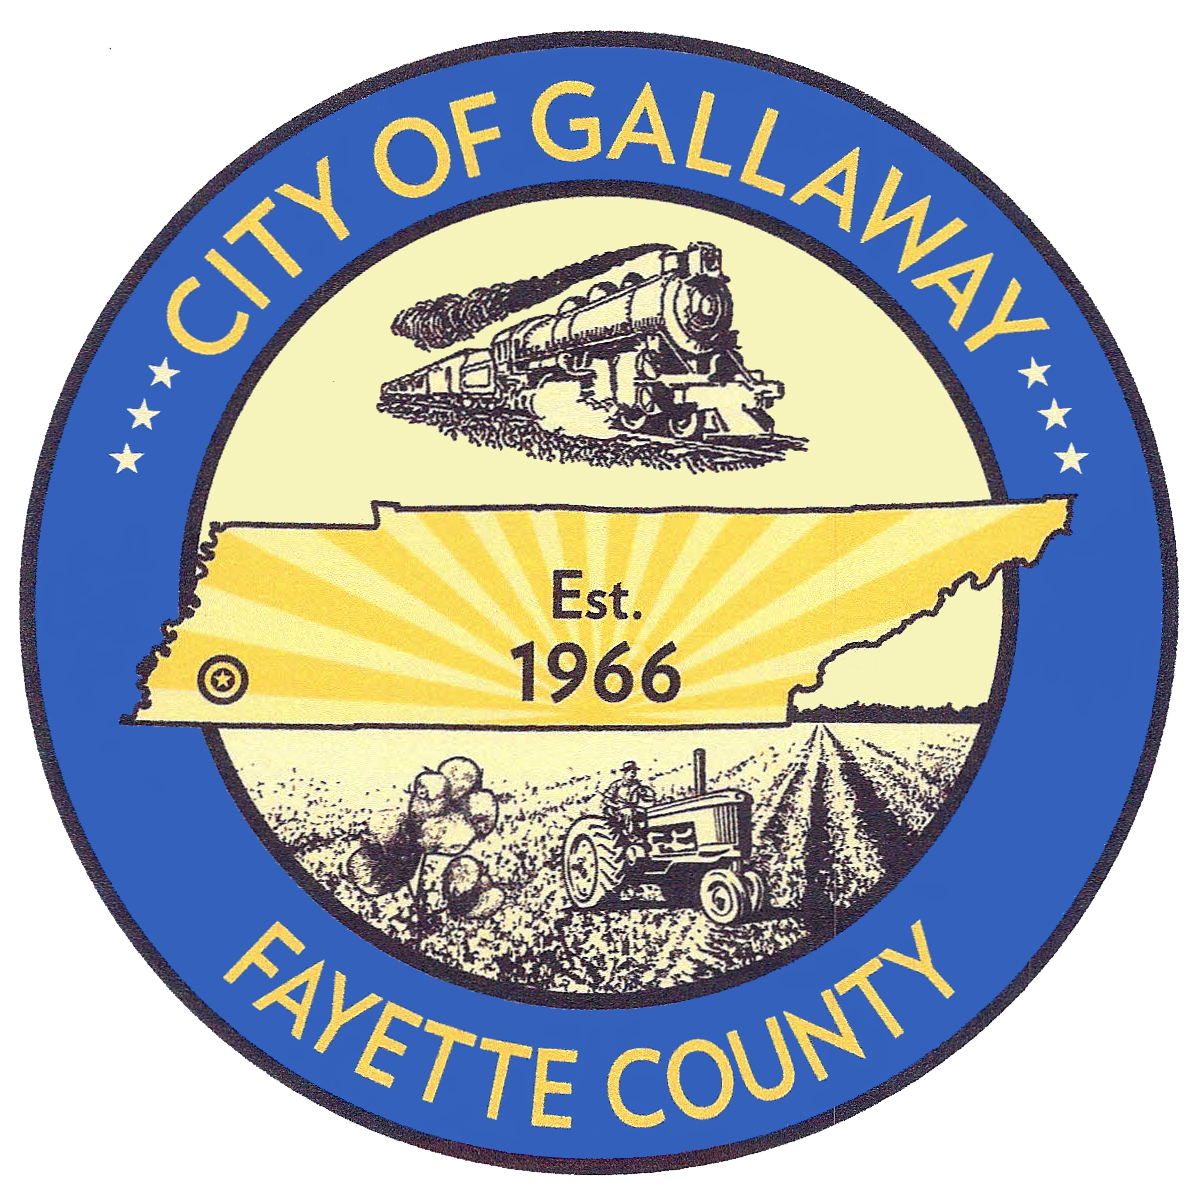 City of Gallaway Seal